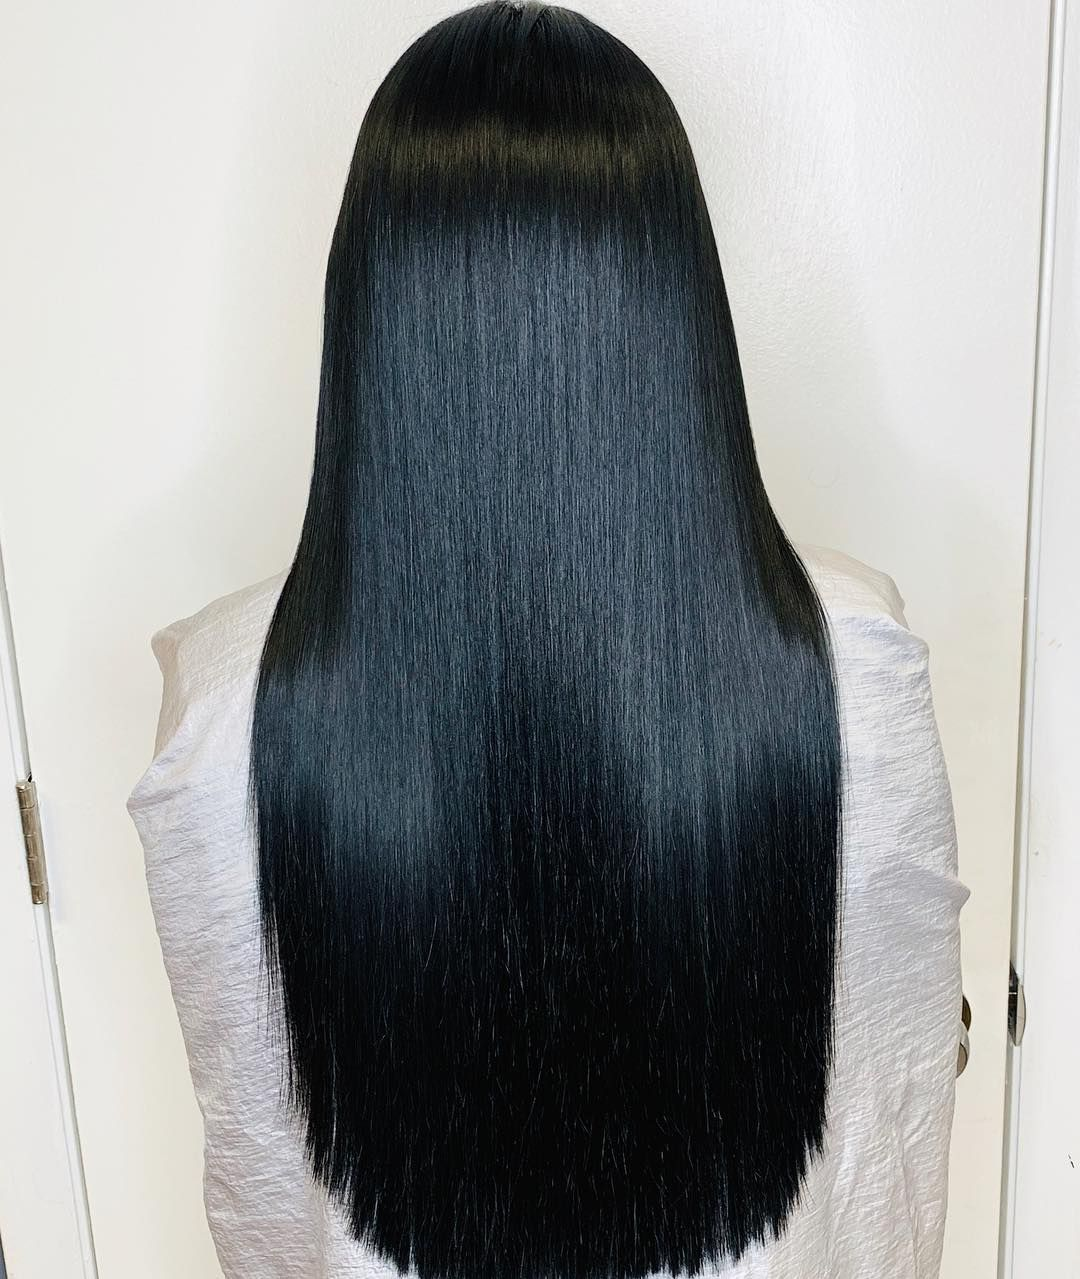 2020 New Straight Wigs Black Long Hair Straight Wave Straight Weft Hair Extensions